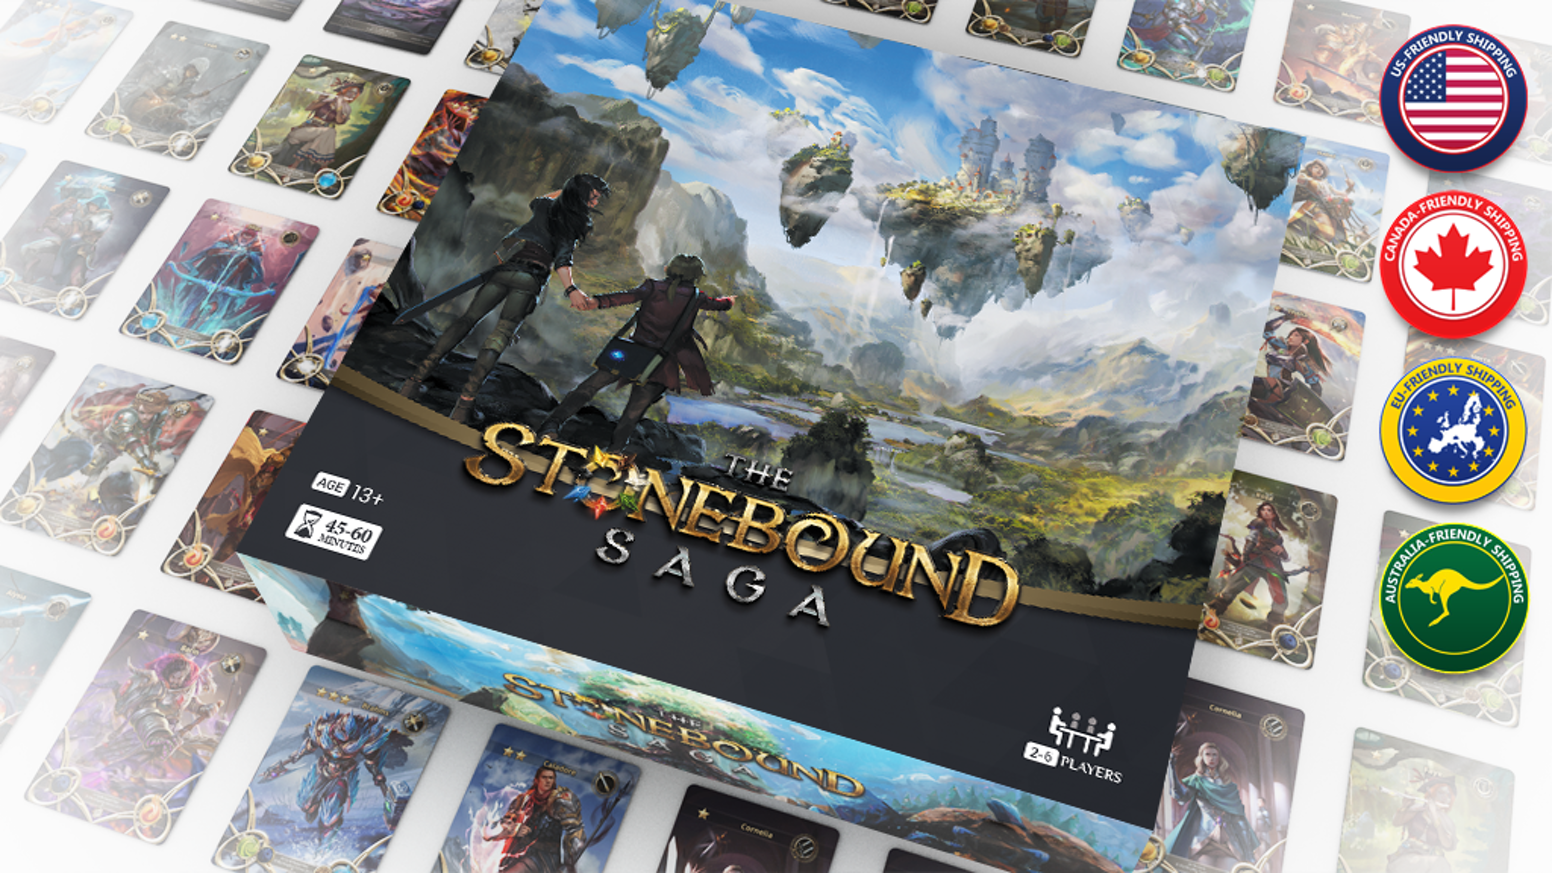 A high fantasy themed strategic card game with unit positioning, resource management, and high replay value for 2-6 players.